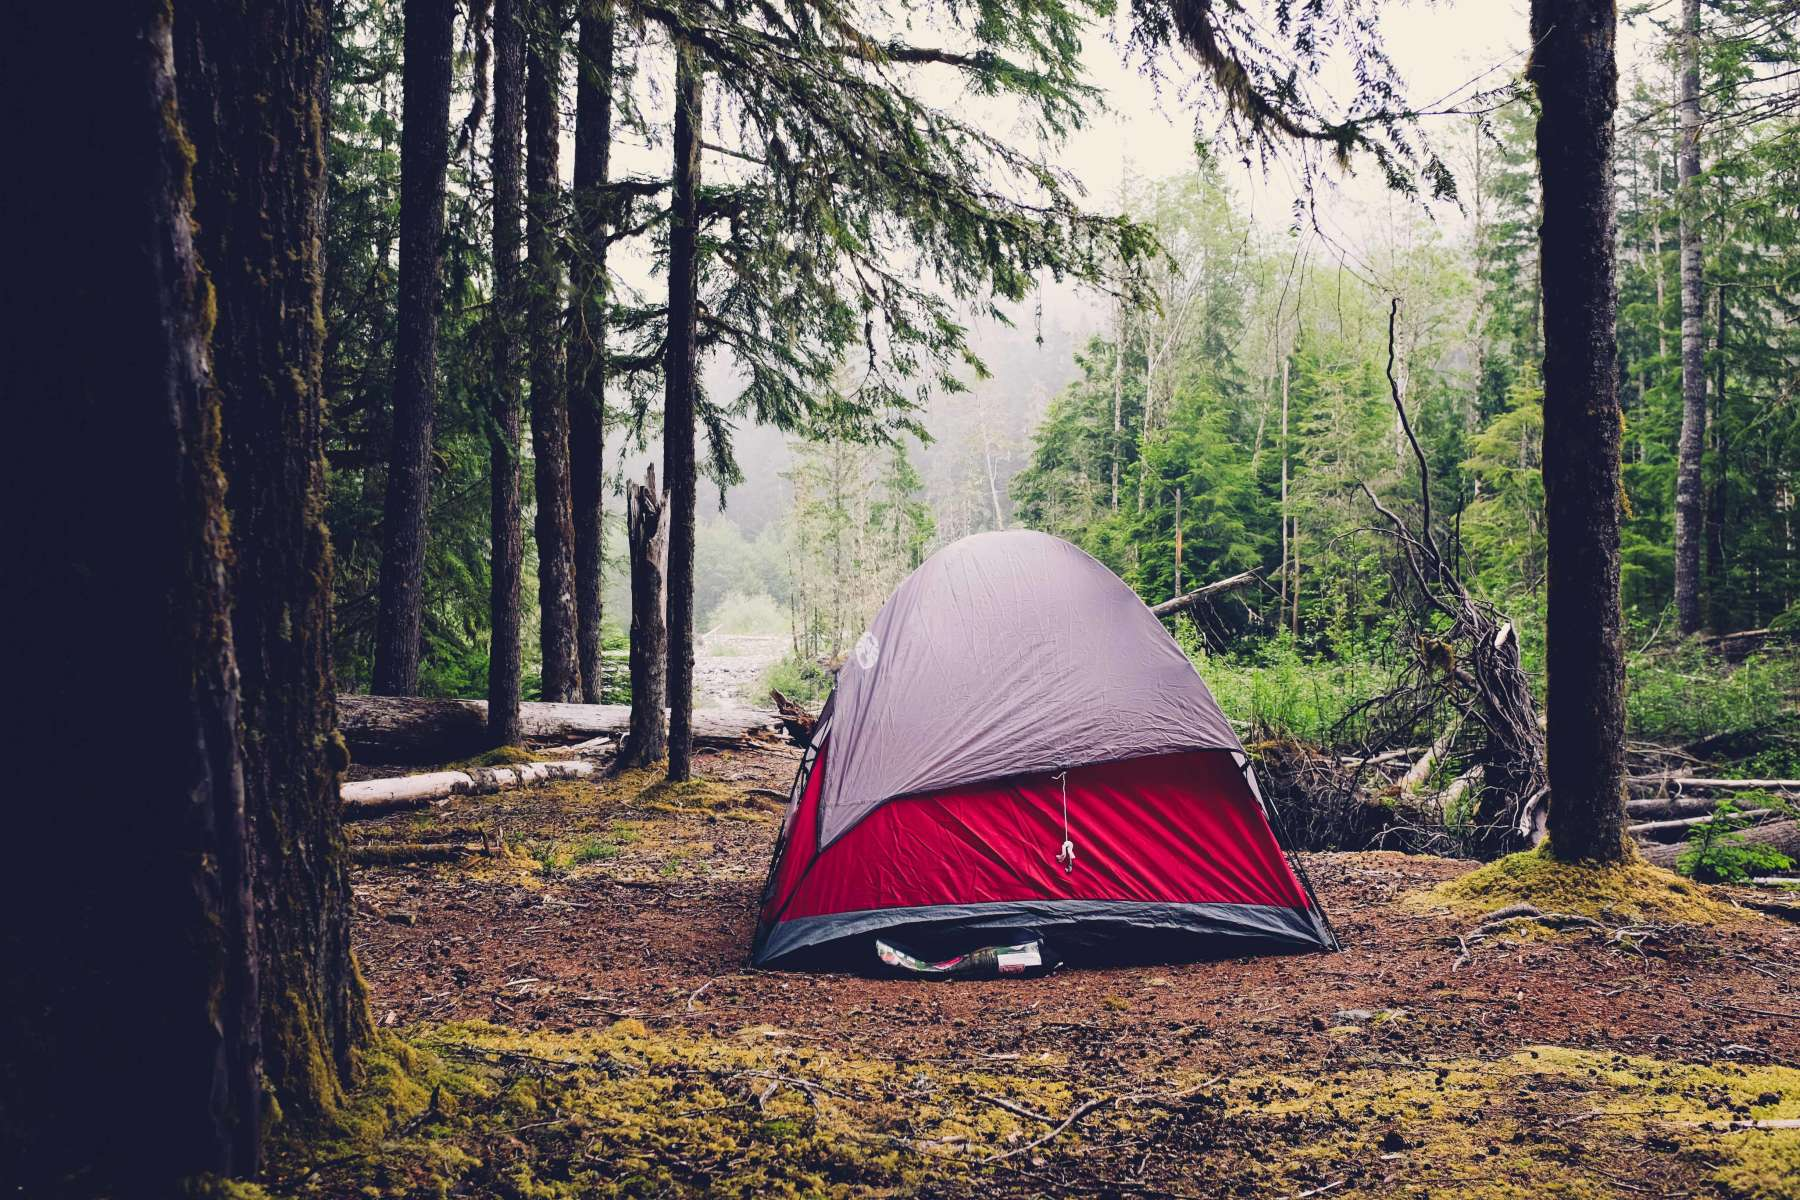 15 epic campsites in US